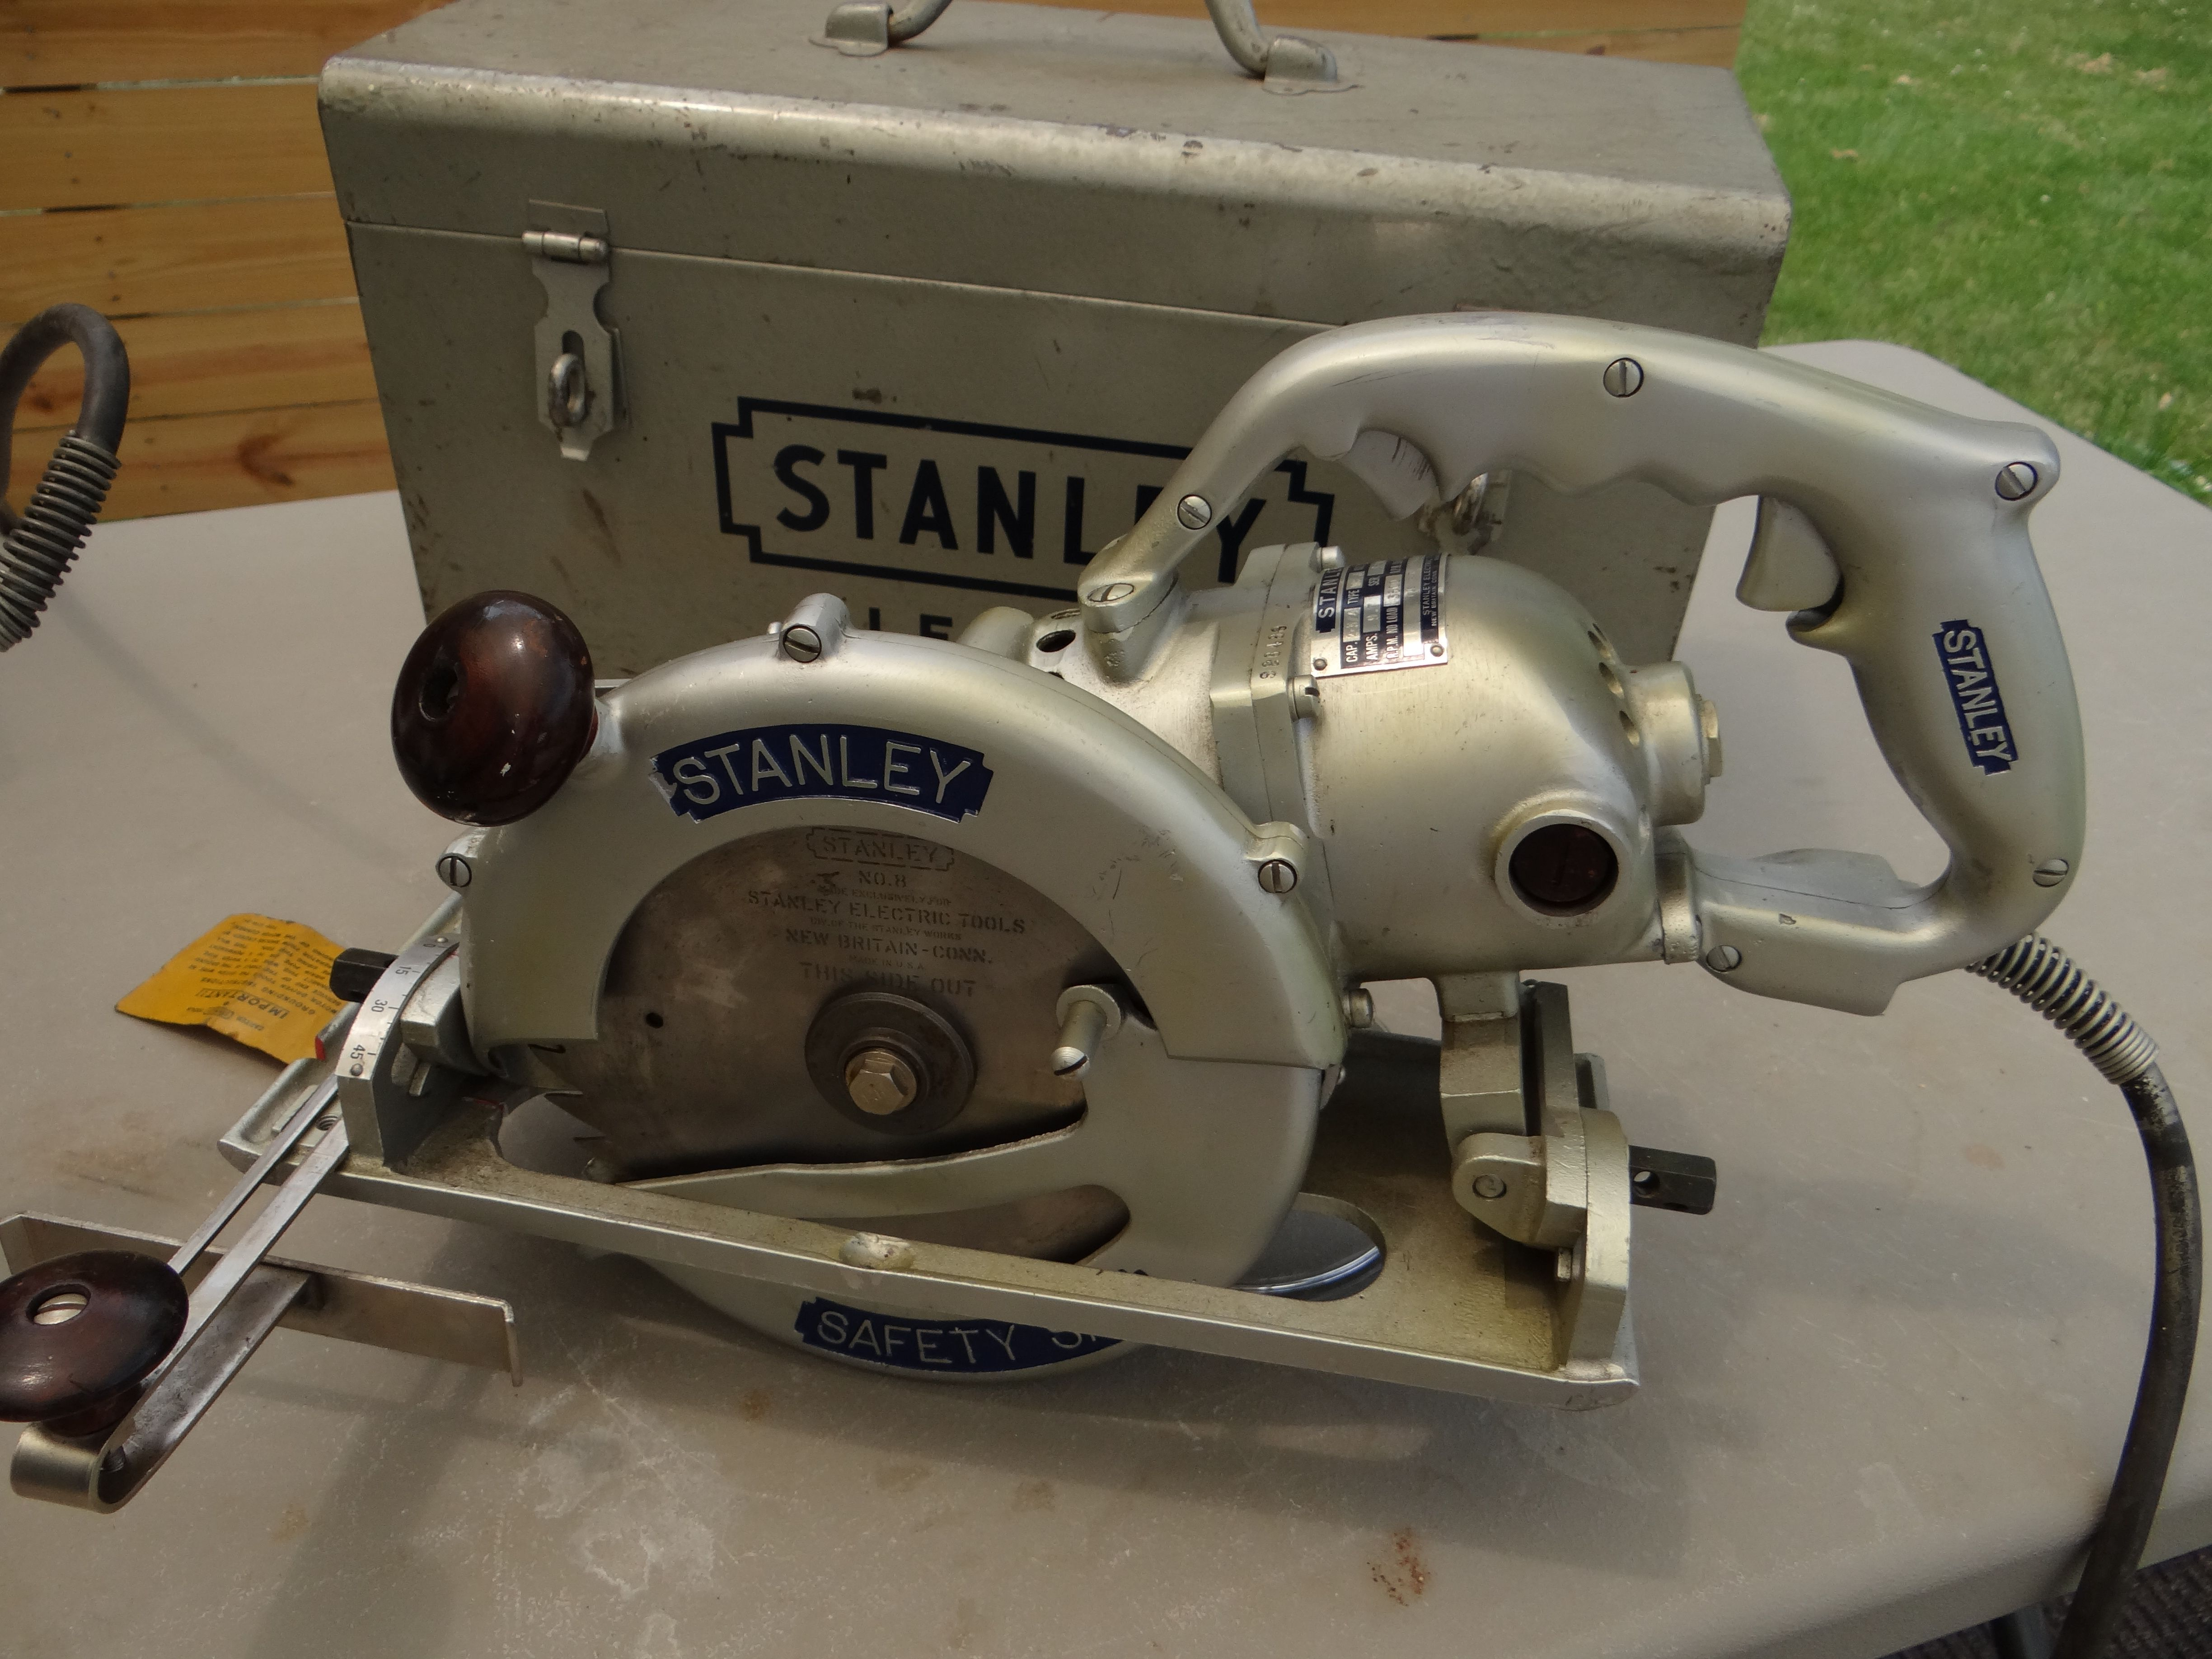 hight resolution of 1950 stanley w8safety saw circular saw cool tools power saw vintage antiques